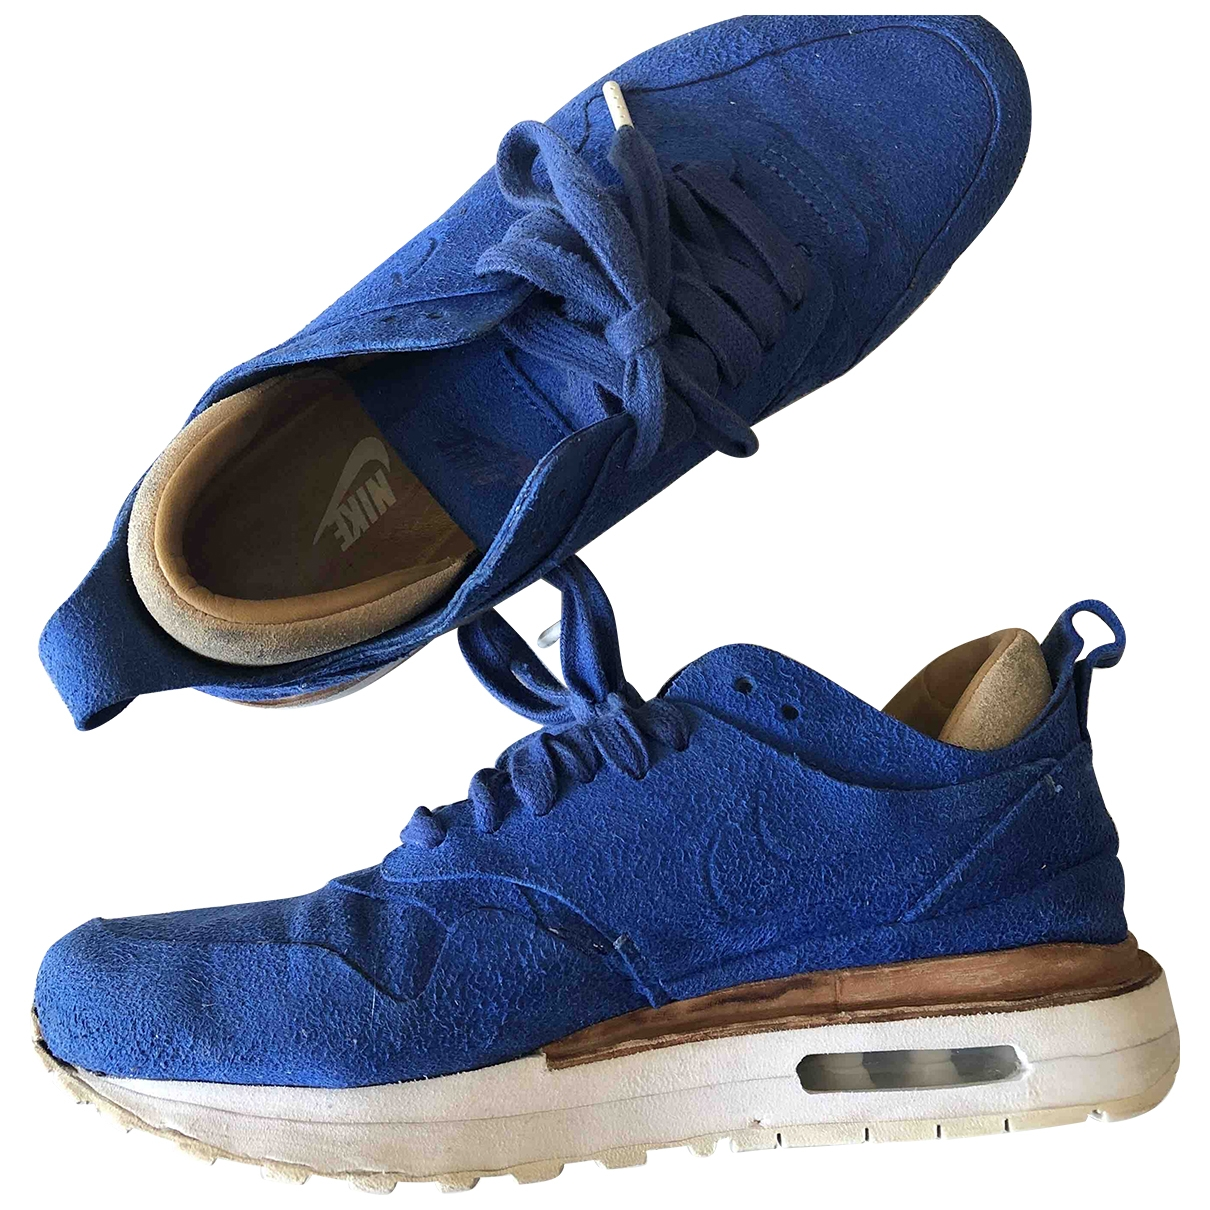 Nike Air Max 1 Blue Suede Trainers for Women 36.5 EU